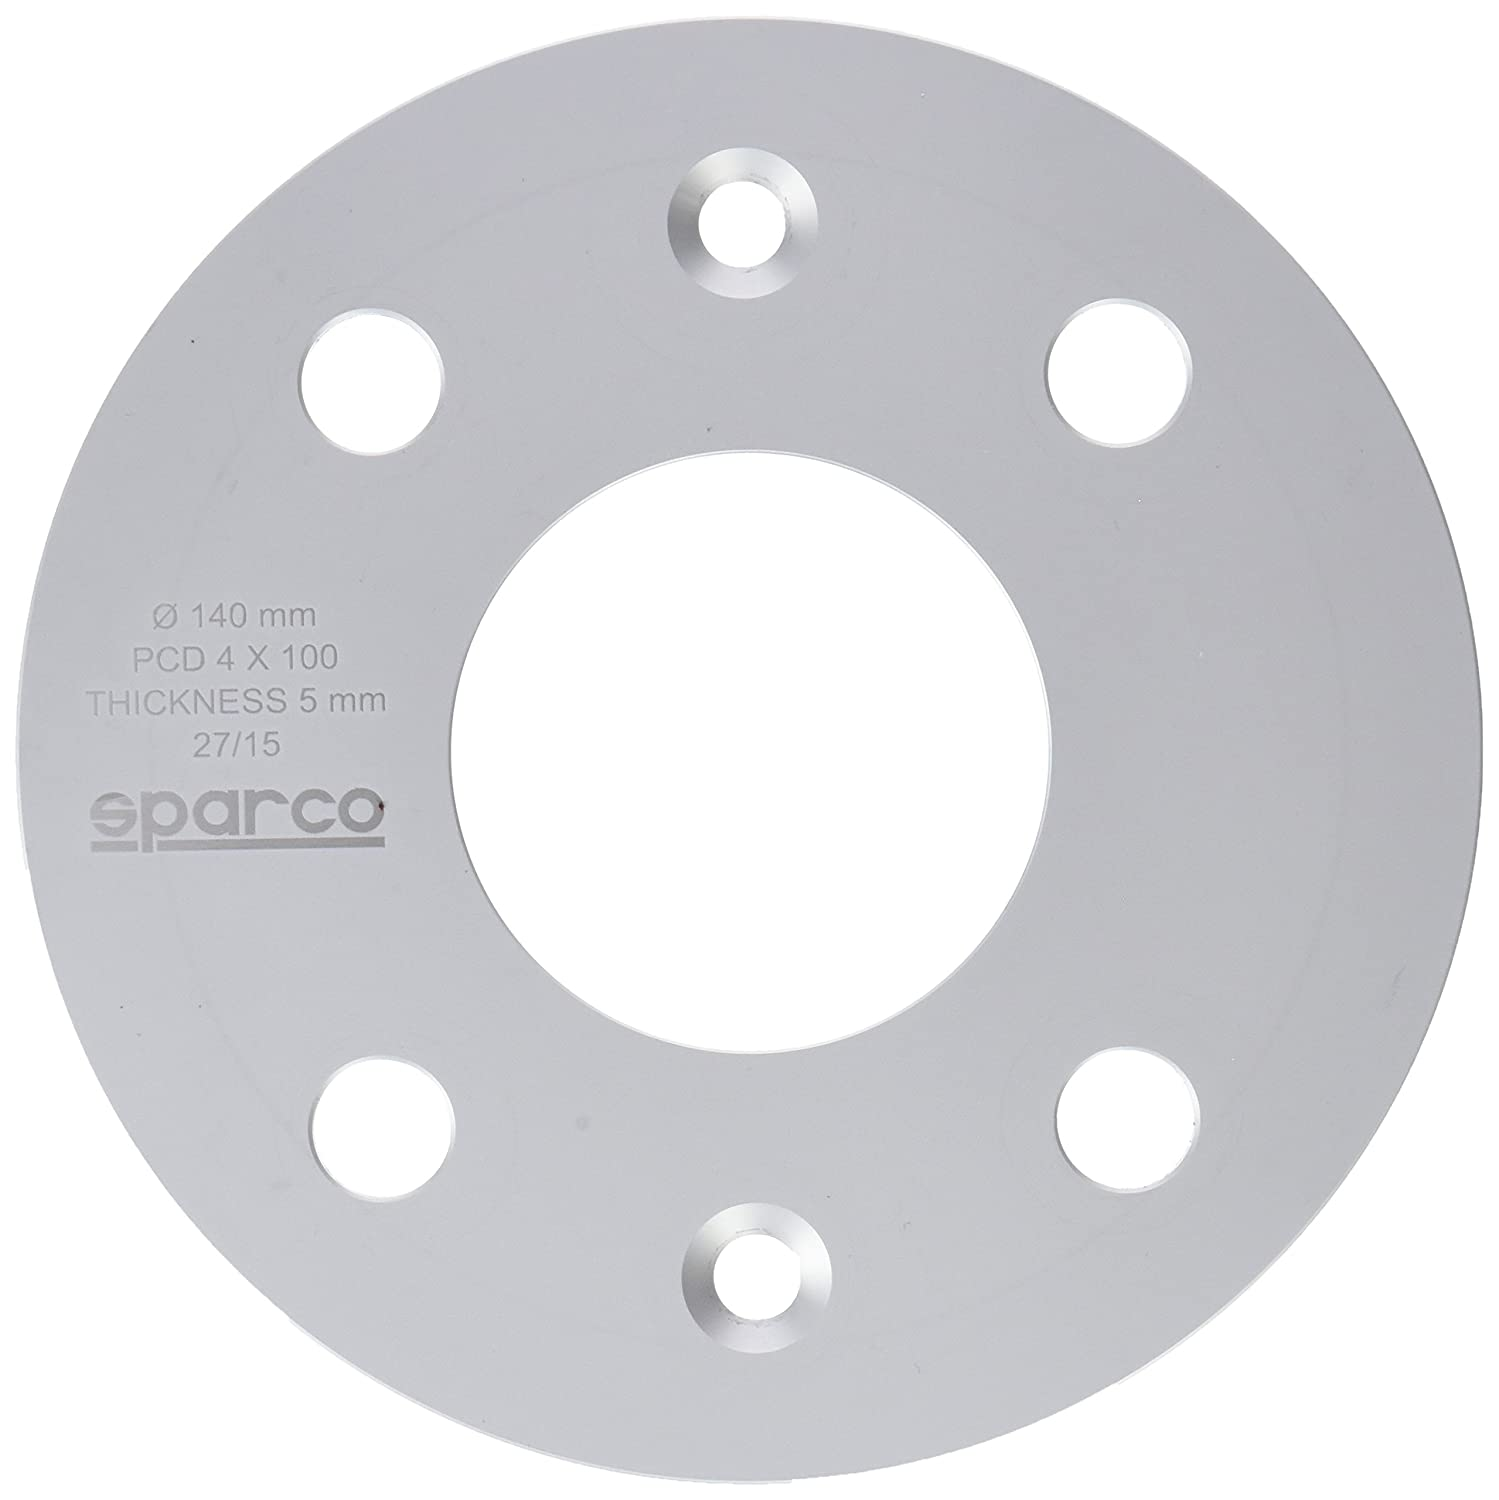 Sparco 051STB02 Separador, 5 mm 4 x 100 mm S051STB02